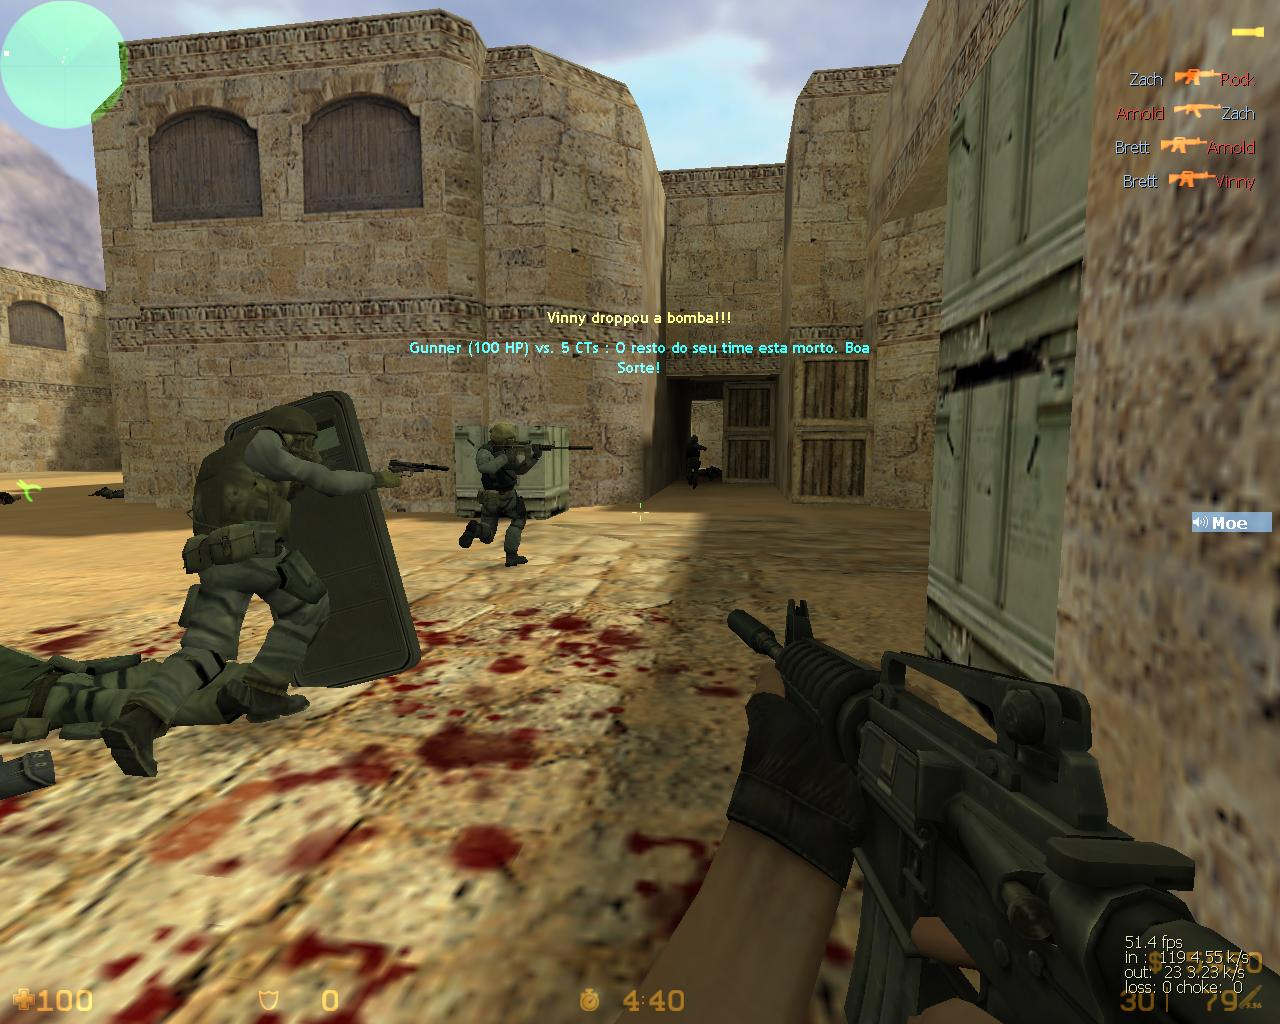 Counter strike 16 free download - 9a54c